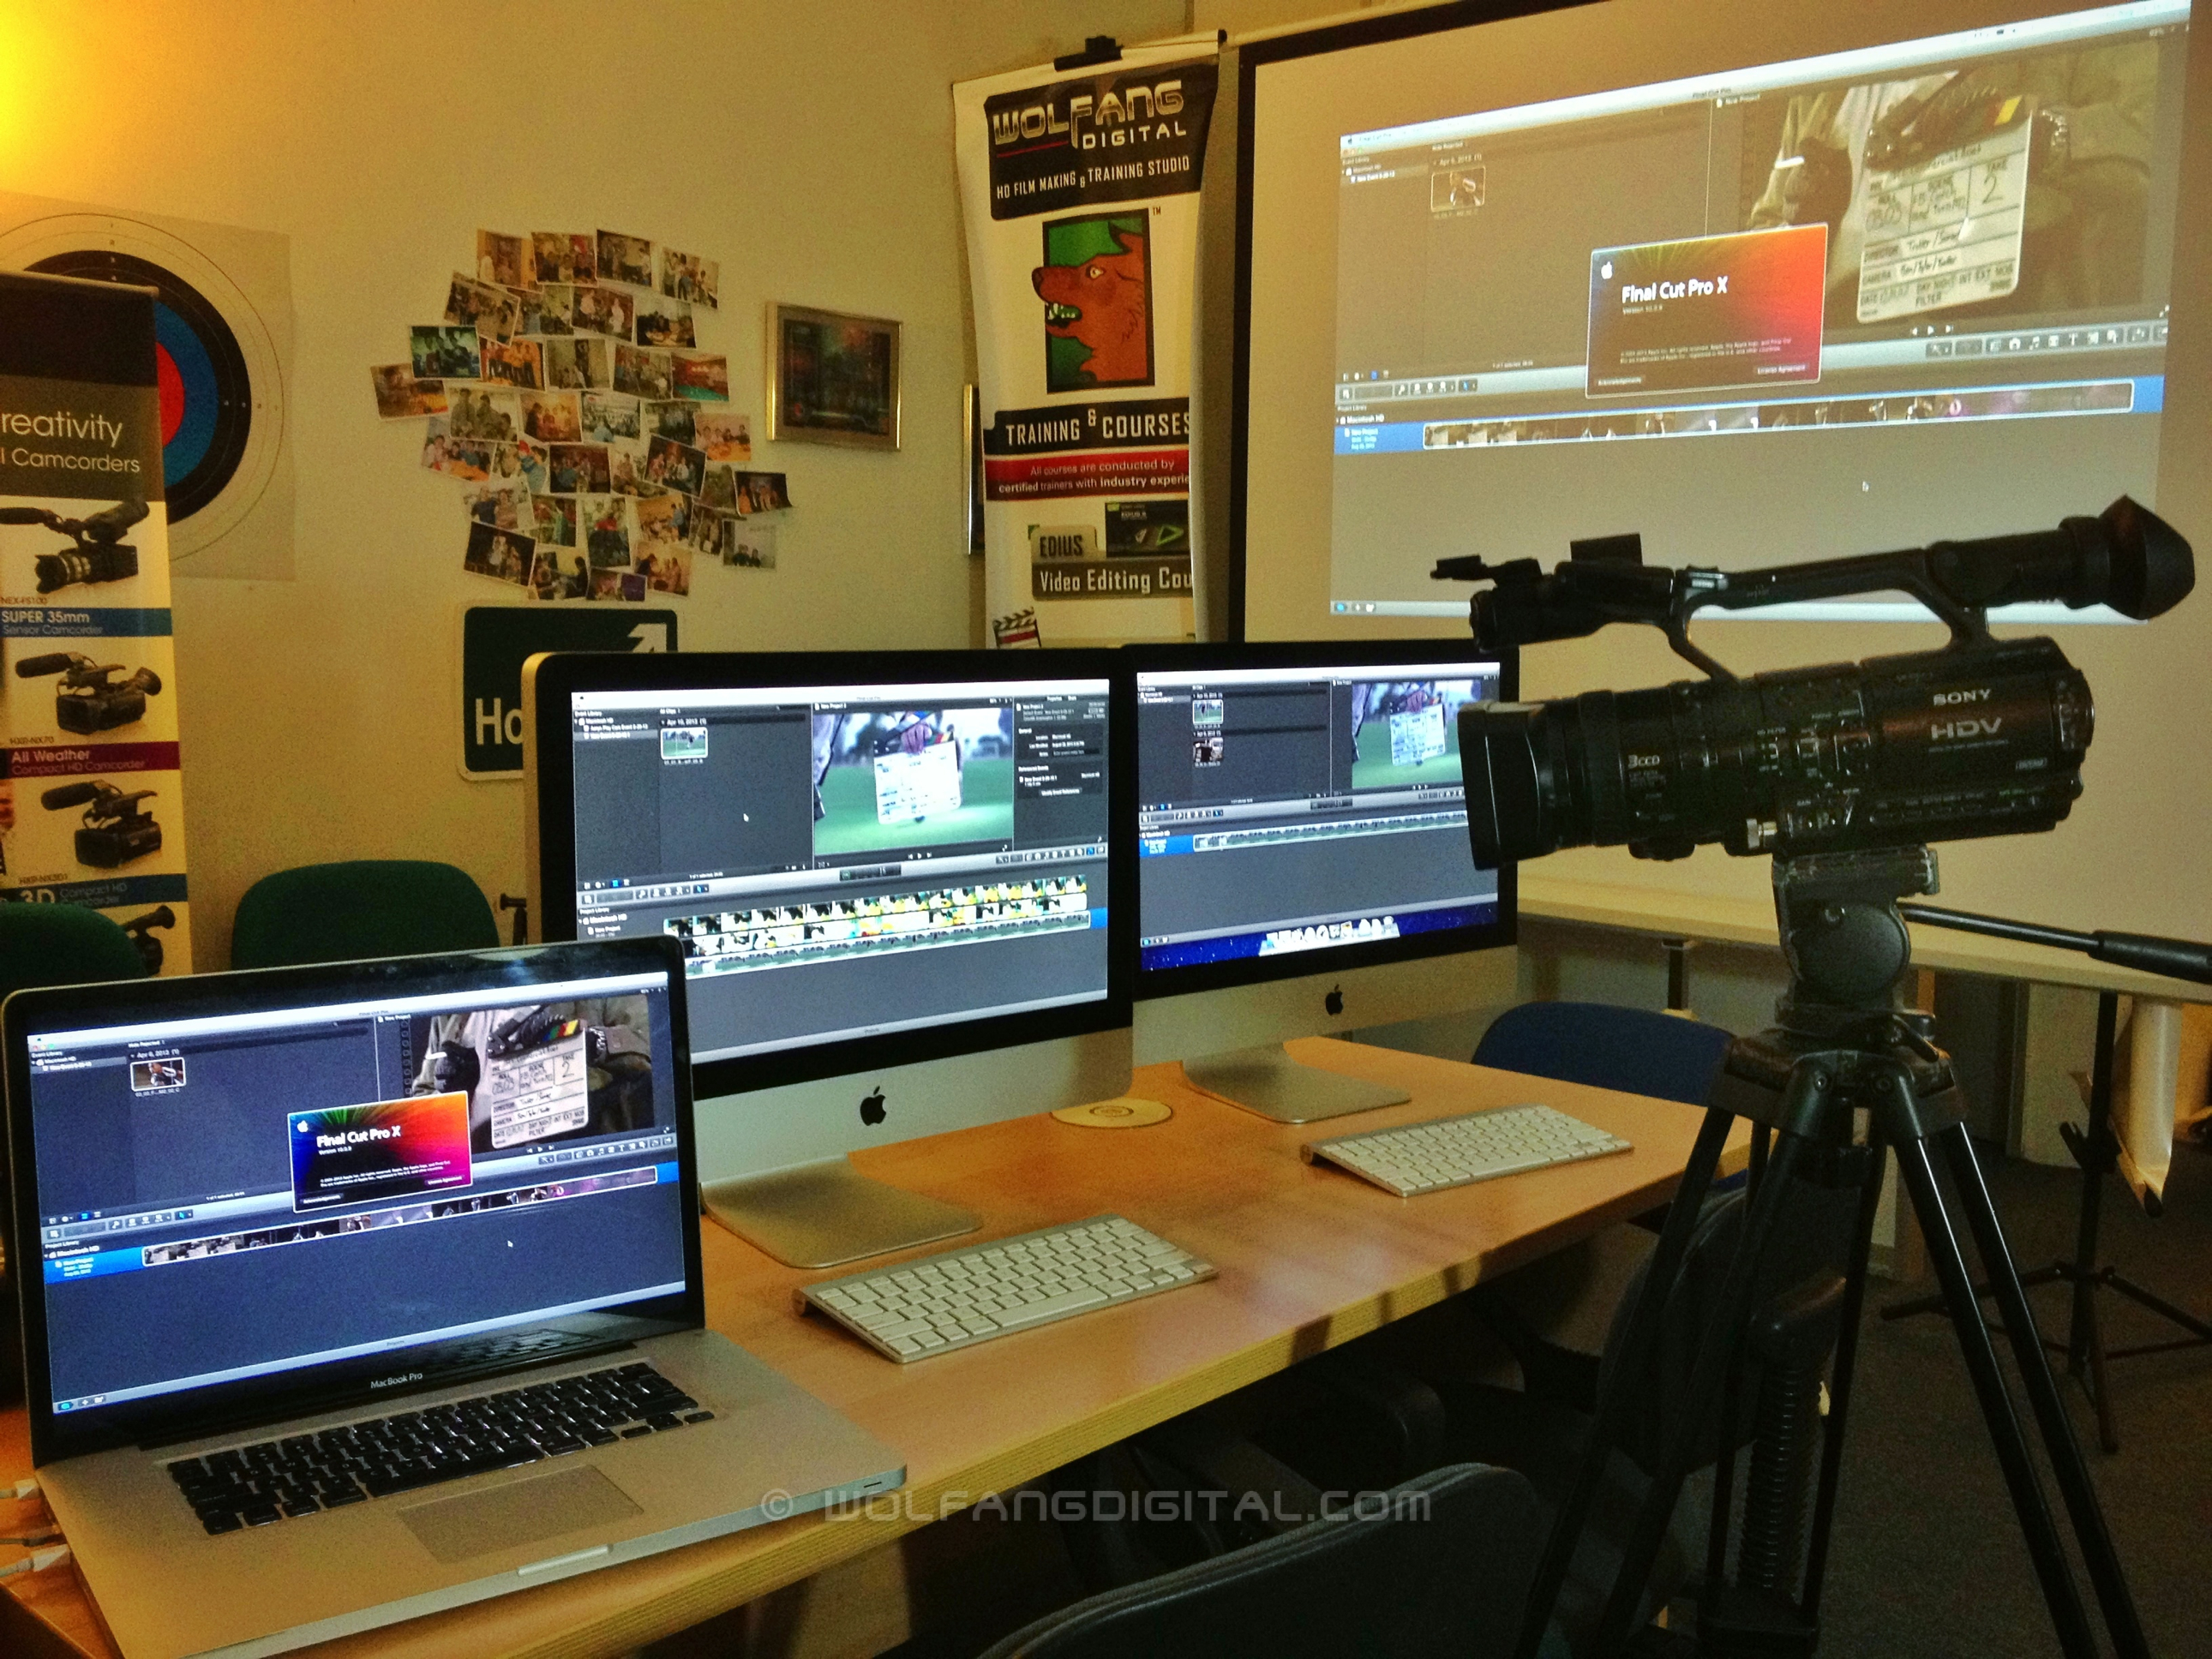 kursus video editing indonesia keren